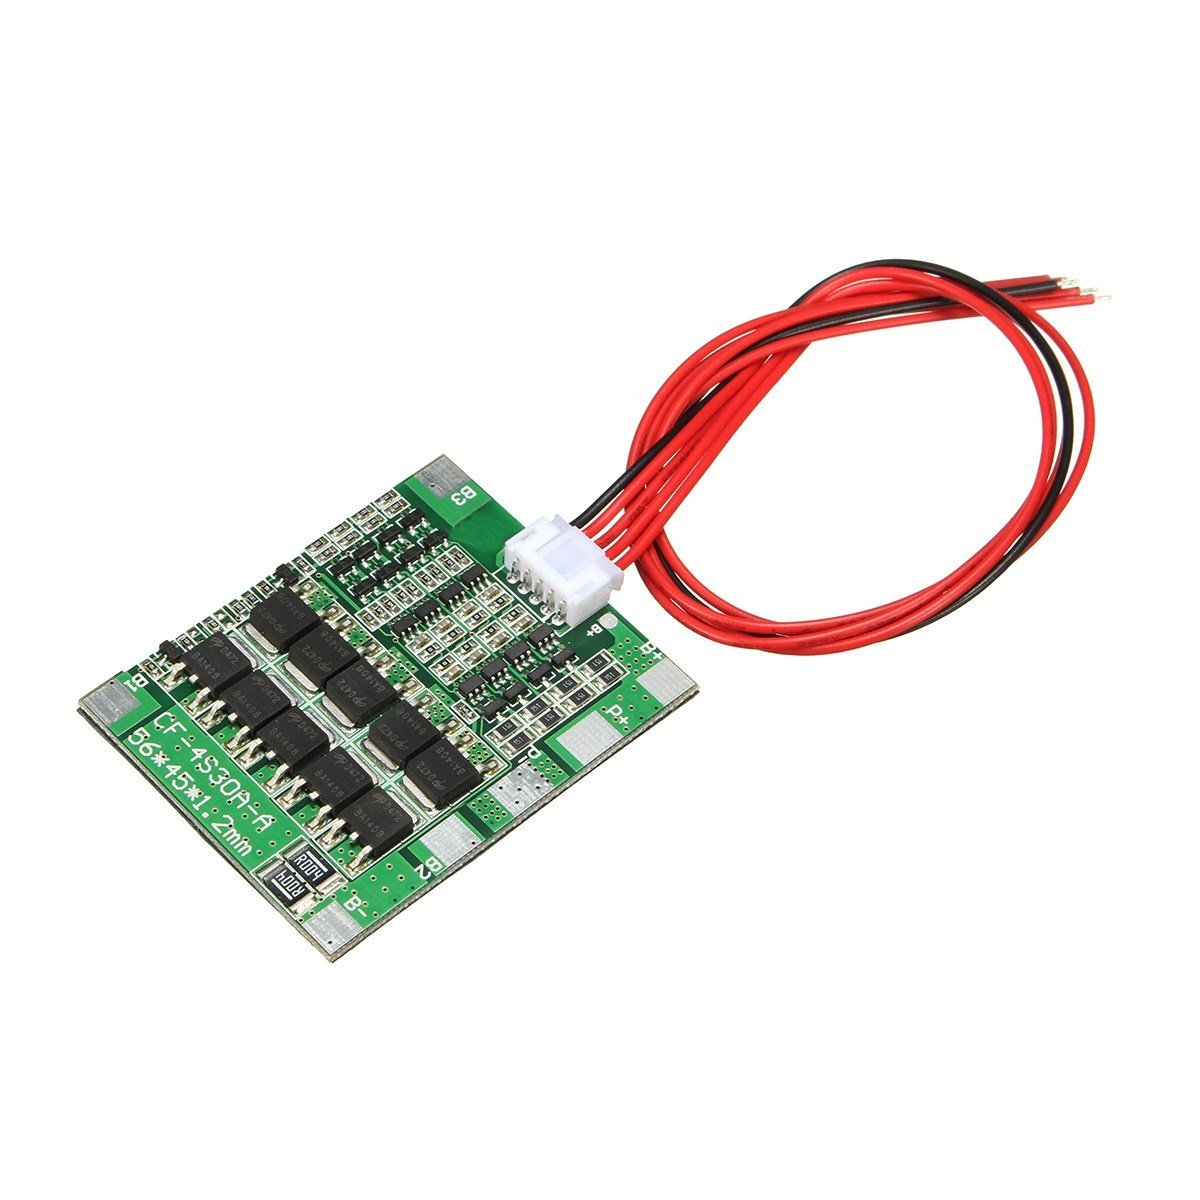 HUIMAI 4S 30A High Current Li-ion Lithium Battery 18650 Charger Protection Board Module 14.4V 14.8V 16.8V Overcharge Over Short Circuit